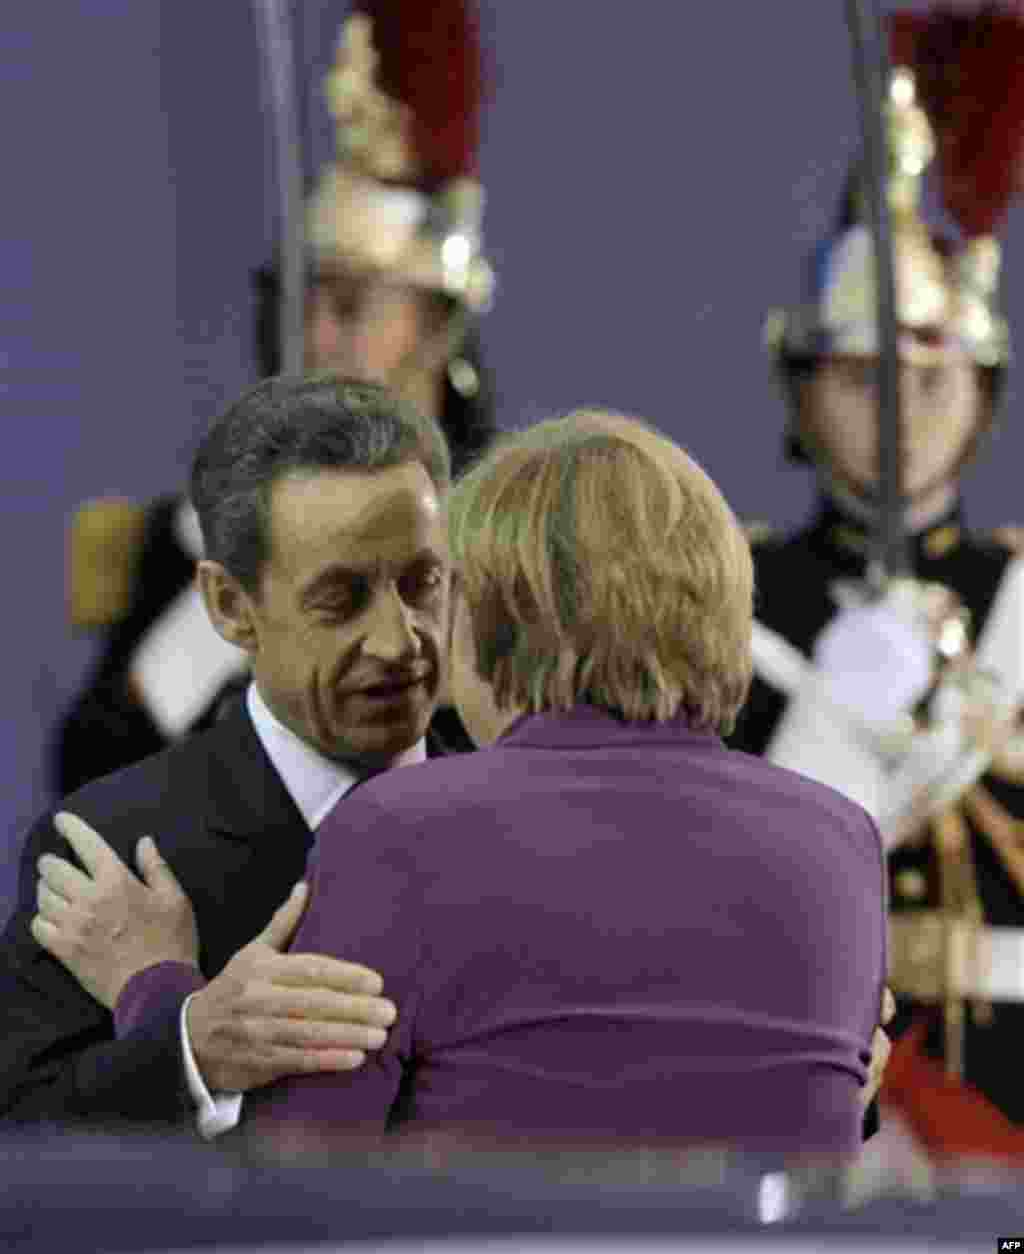 French President Nicolas Sarkozy, left, greets German Chancellor Angela Merkel during arrivals for the G20 summit in Cannes, France on Wednesday, Nov. 2, 2011. Greek Prime Minister George Papandreou was flying to the chic French Riviera resort of Cannes